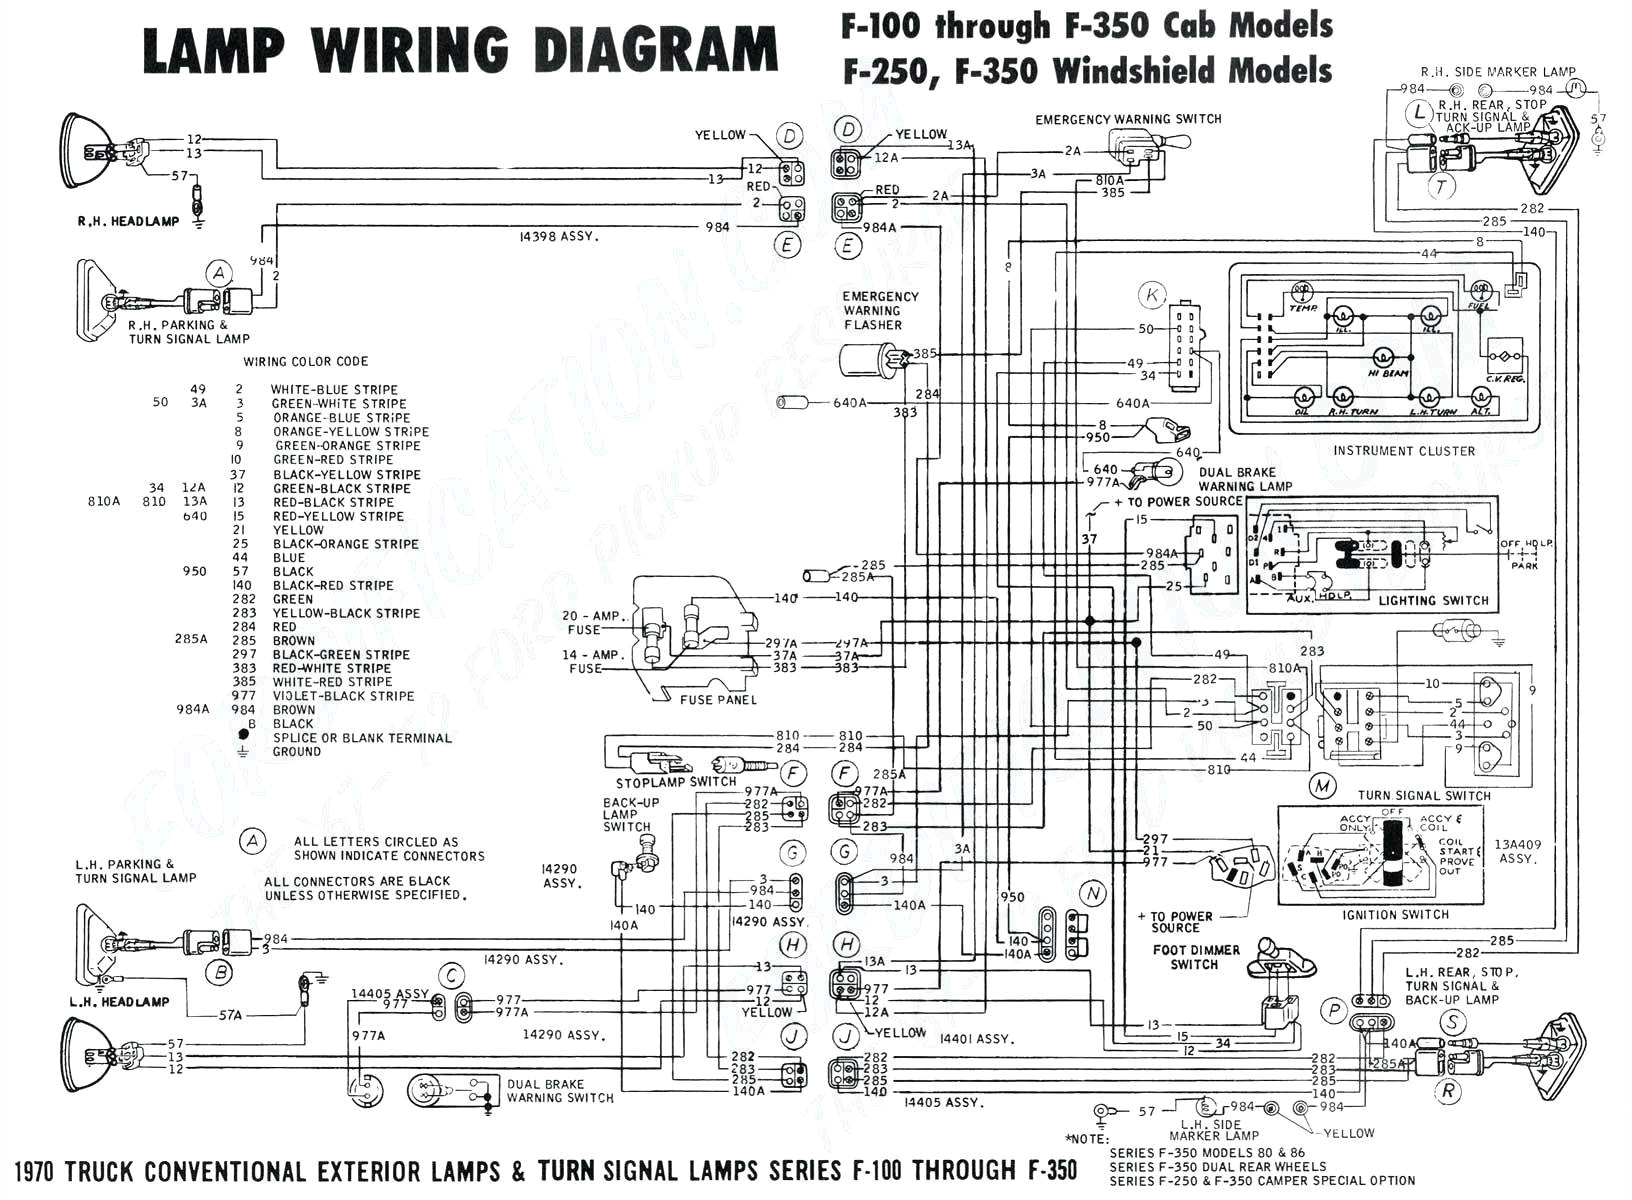 ford f 350 windshield wiper motor wiring diagram wiring diagram 80 toyota truck windshield wiper relay location free download wiring